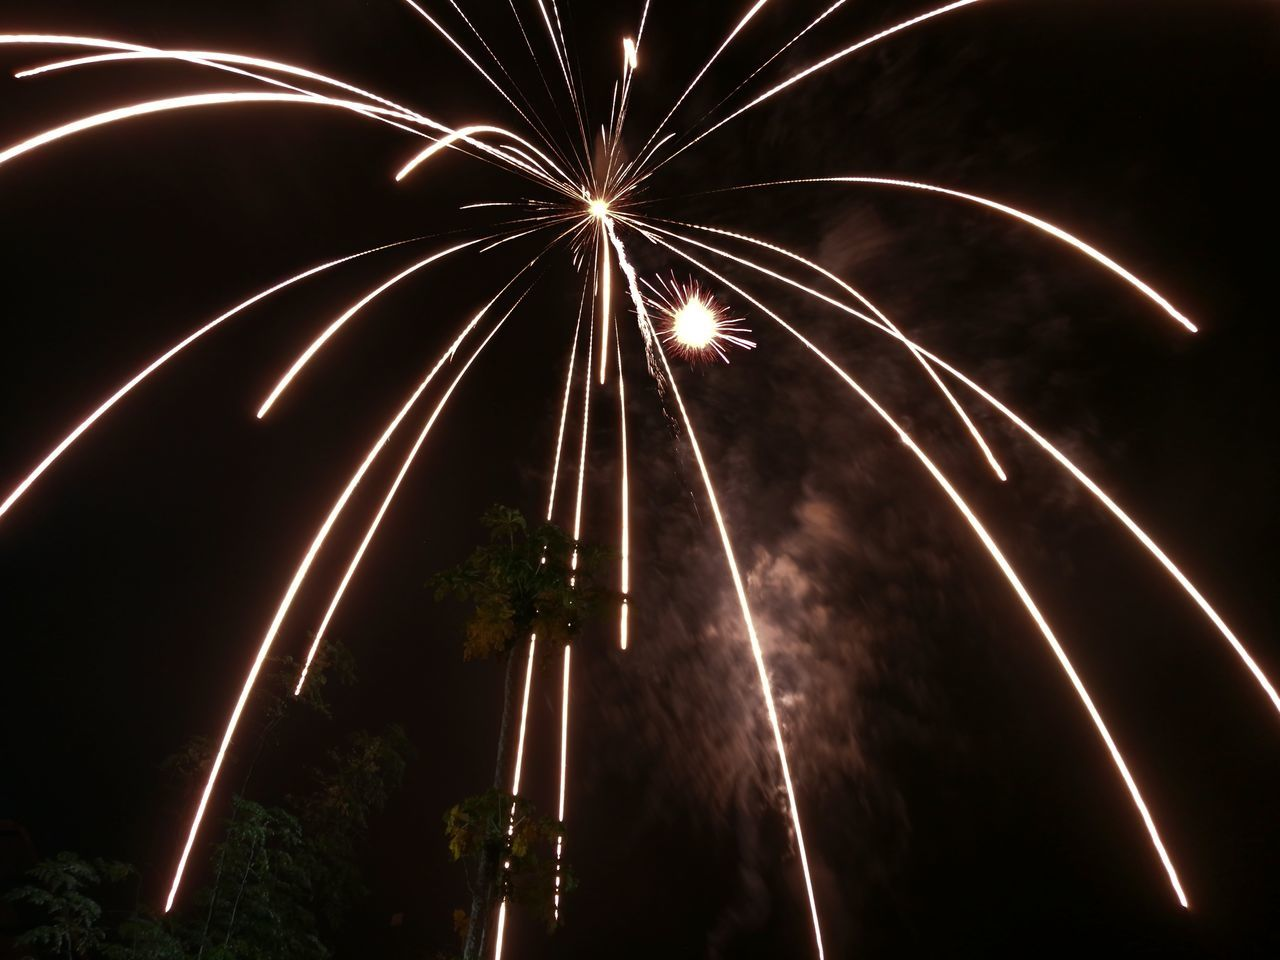 motion, long exposure, night, firework display, firework - man made object, illuminated, blurred motion, exploding, celebration, glowing, arts culture and entertainment, low angle view, outdoors, event, firework, no people, sky